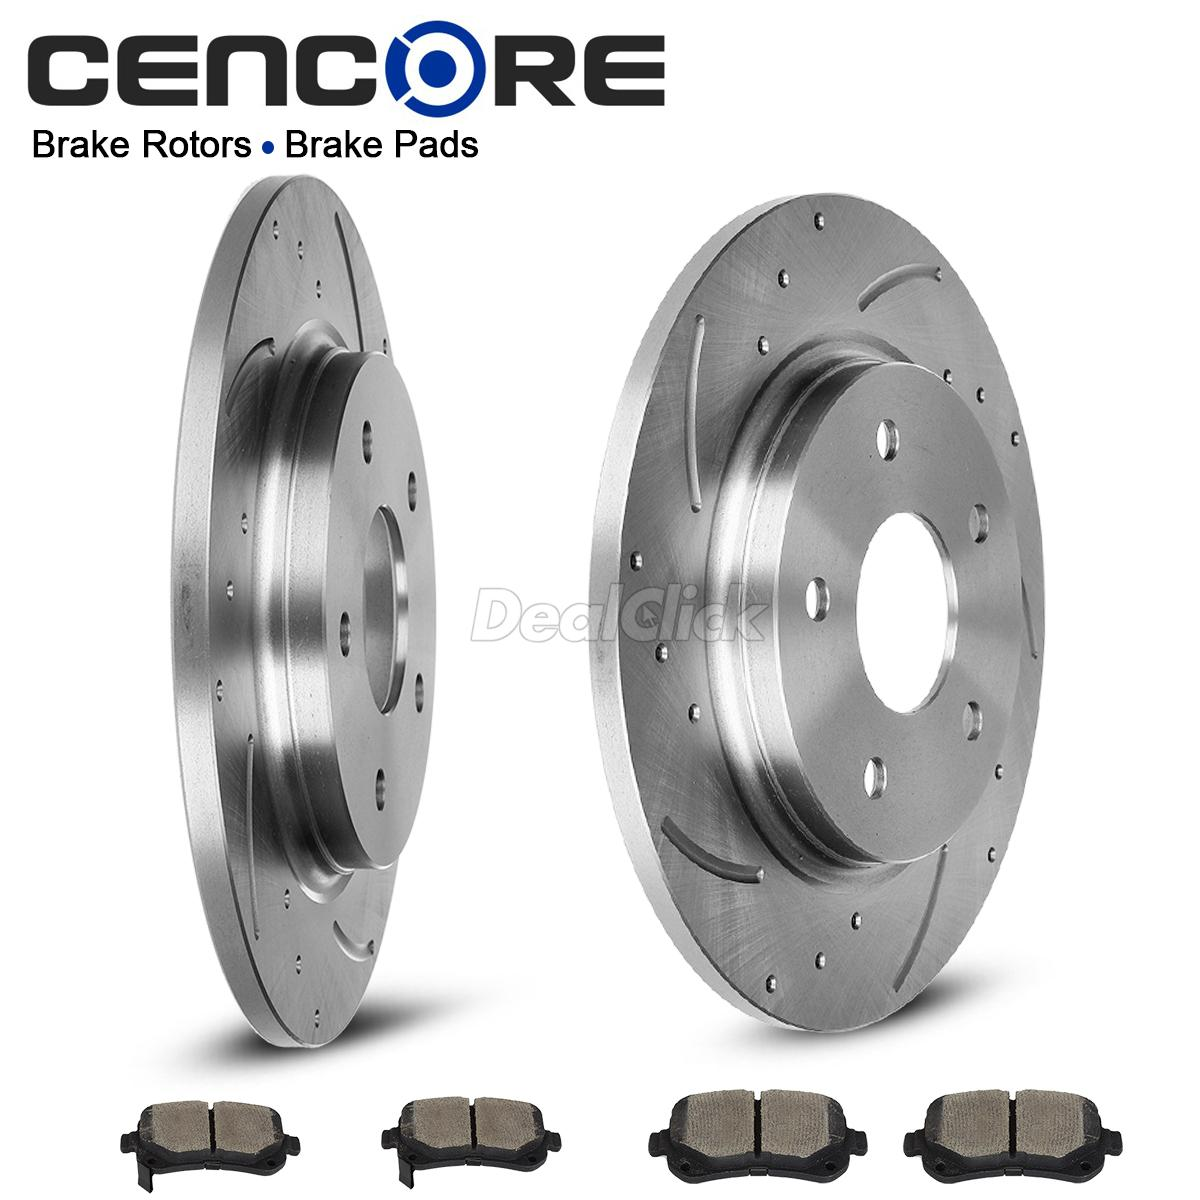 Chrysler Town And Country 2008 For Sale: Rear Kit Brake Rotors Ceramic Pads For Chrysler Town